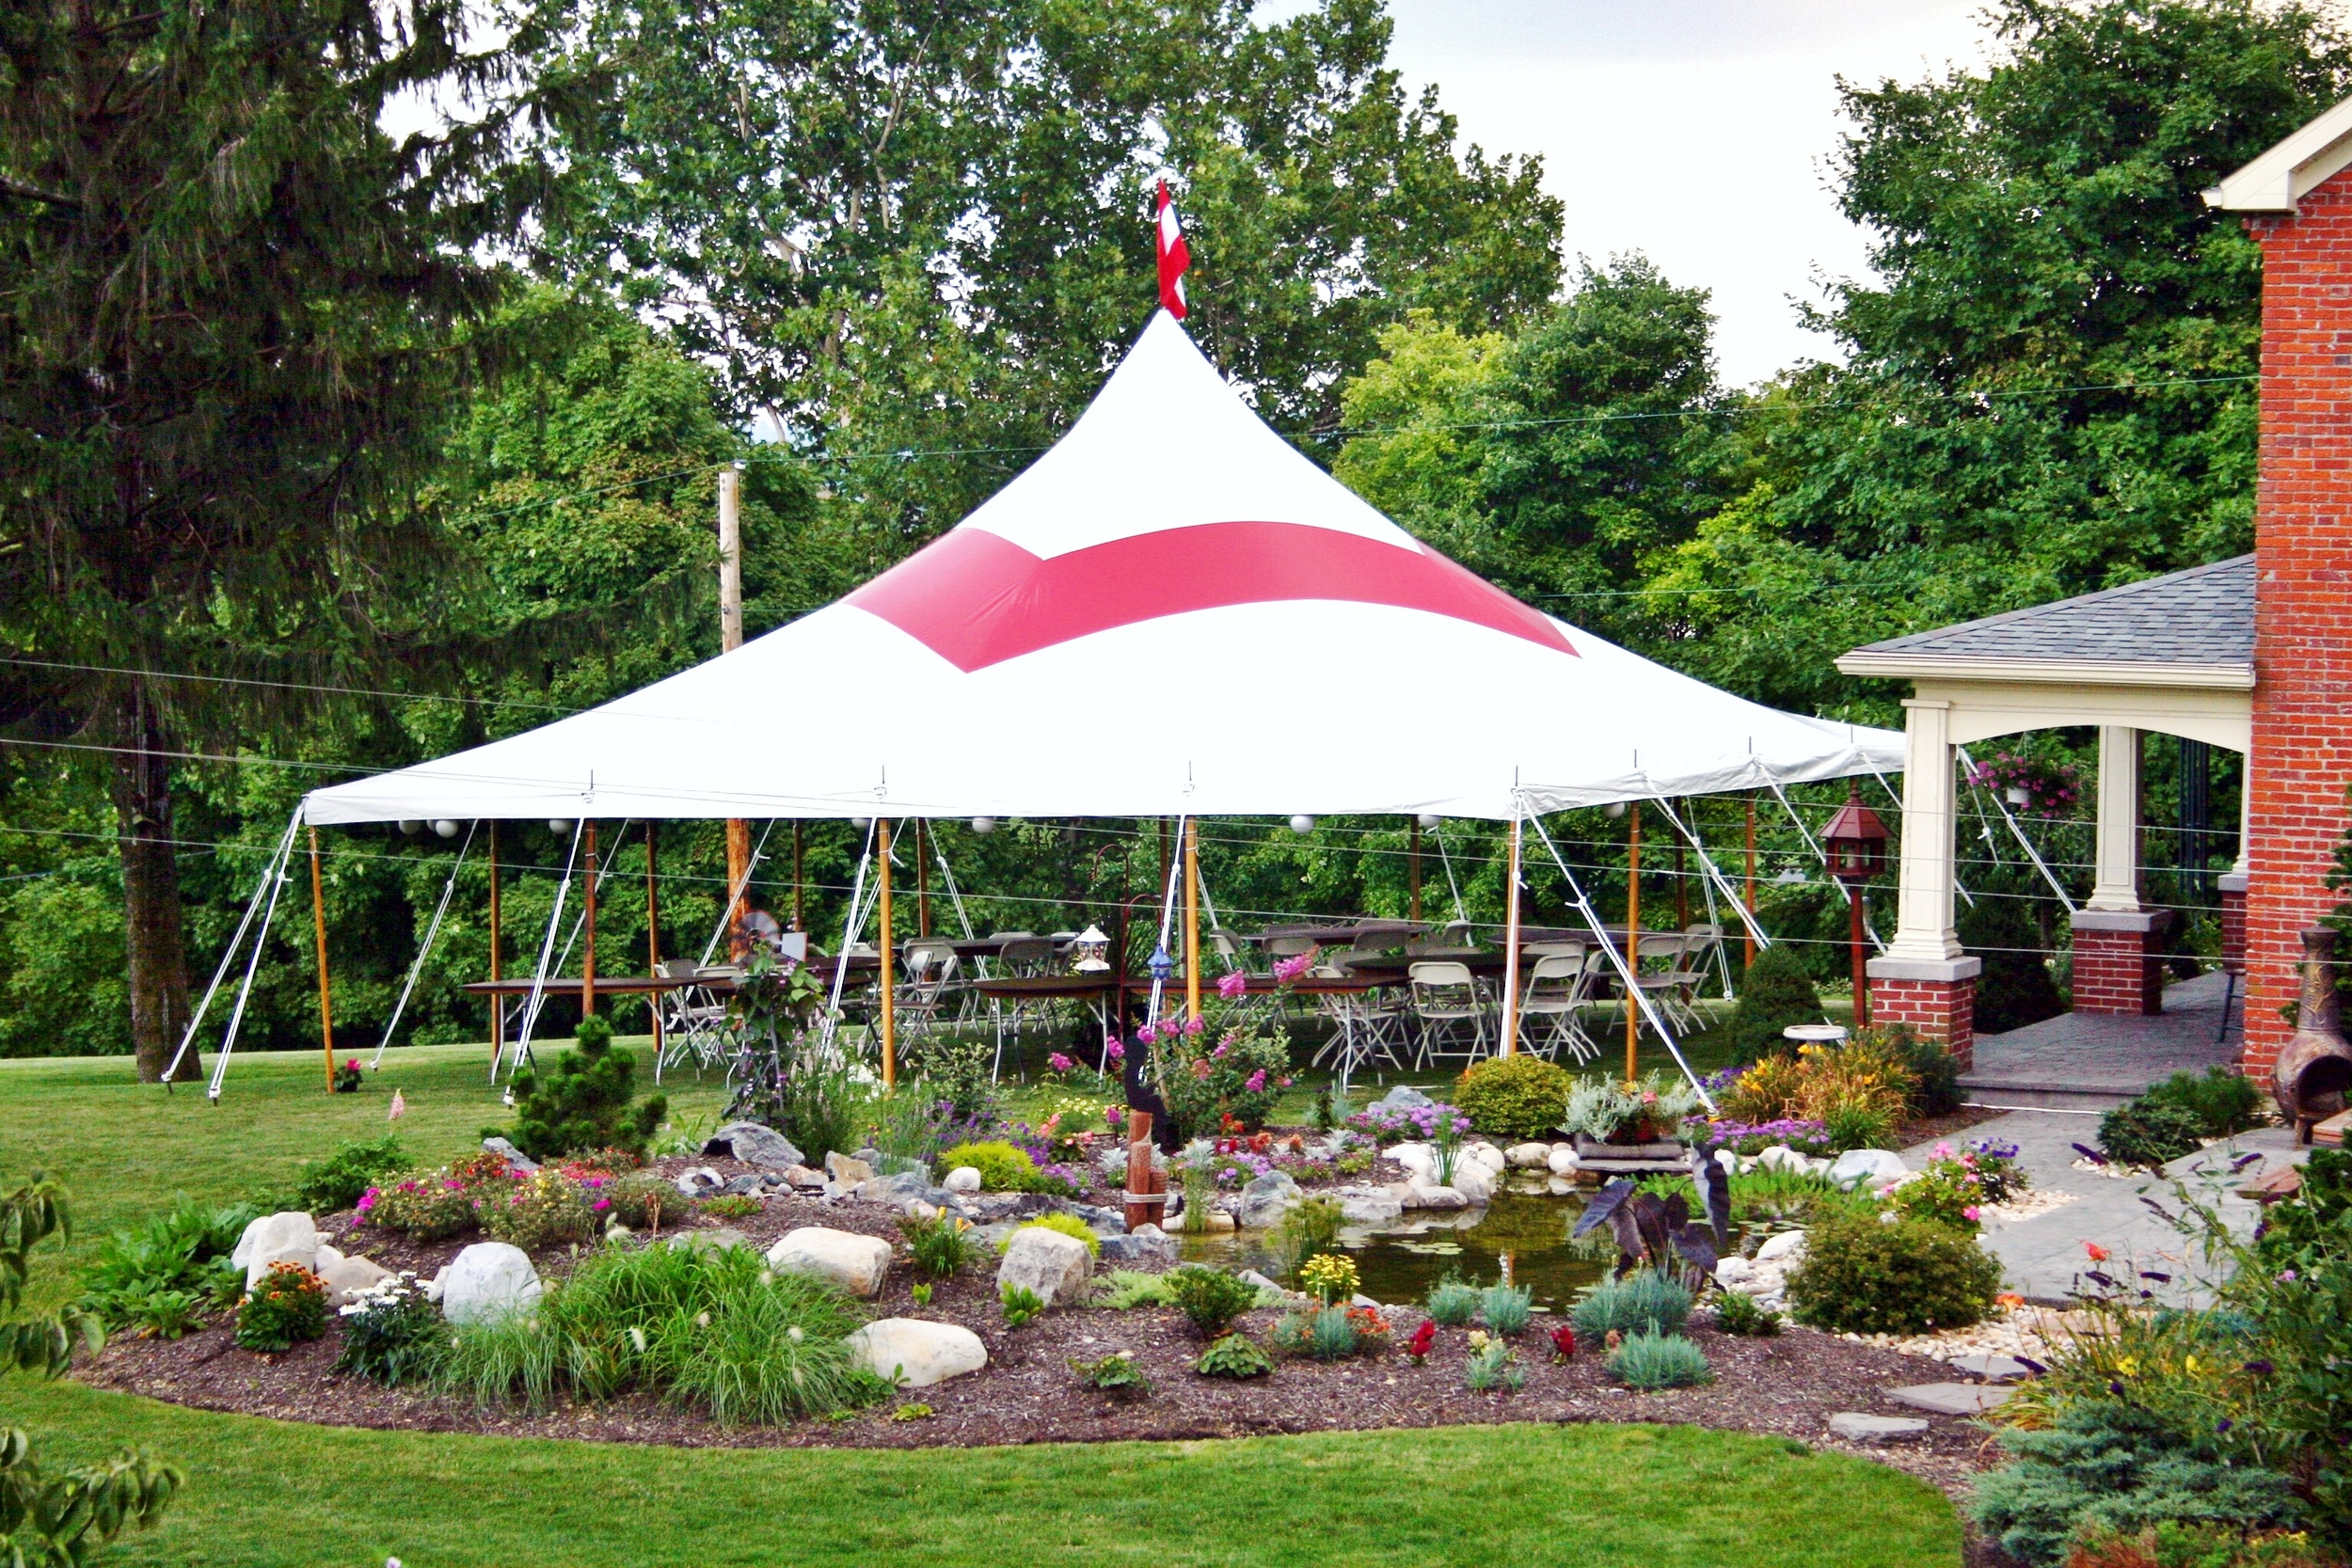 Hold your graduation party outside under a tent